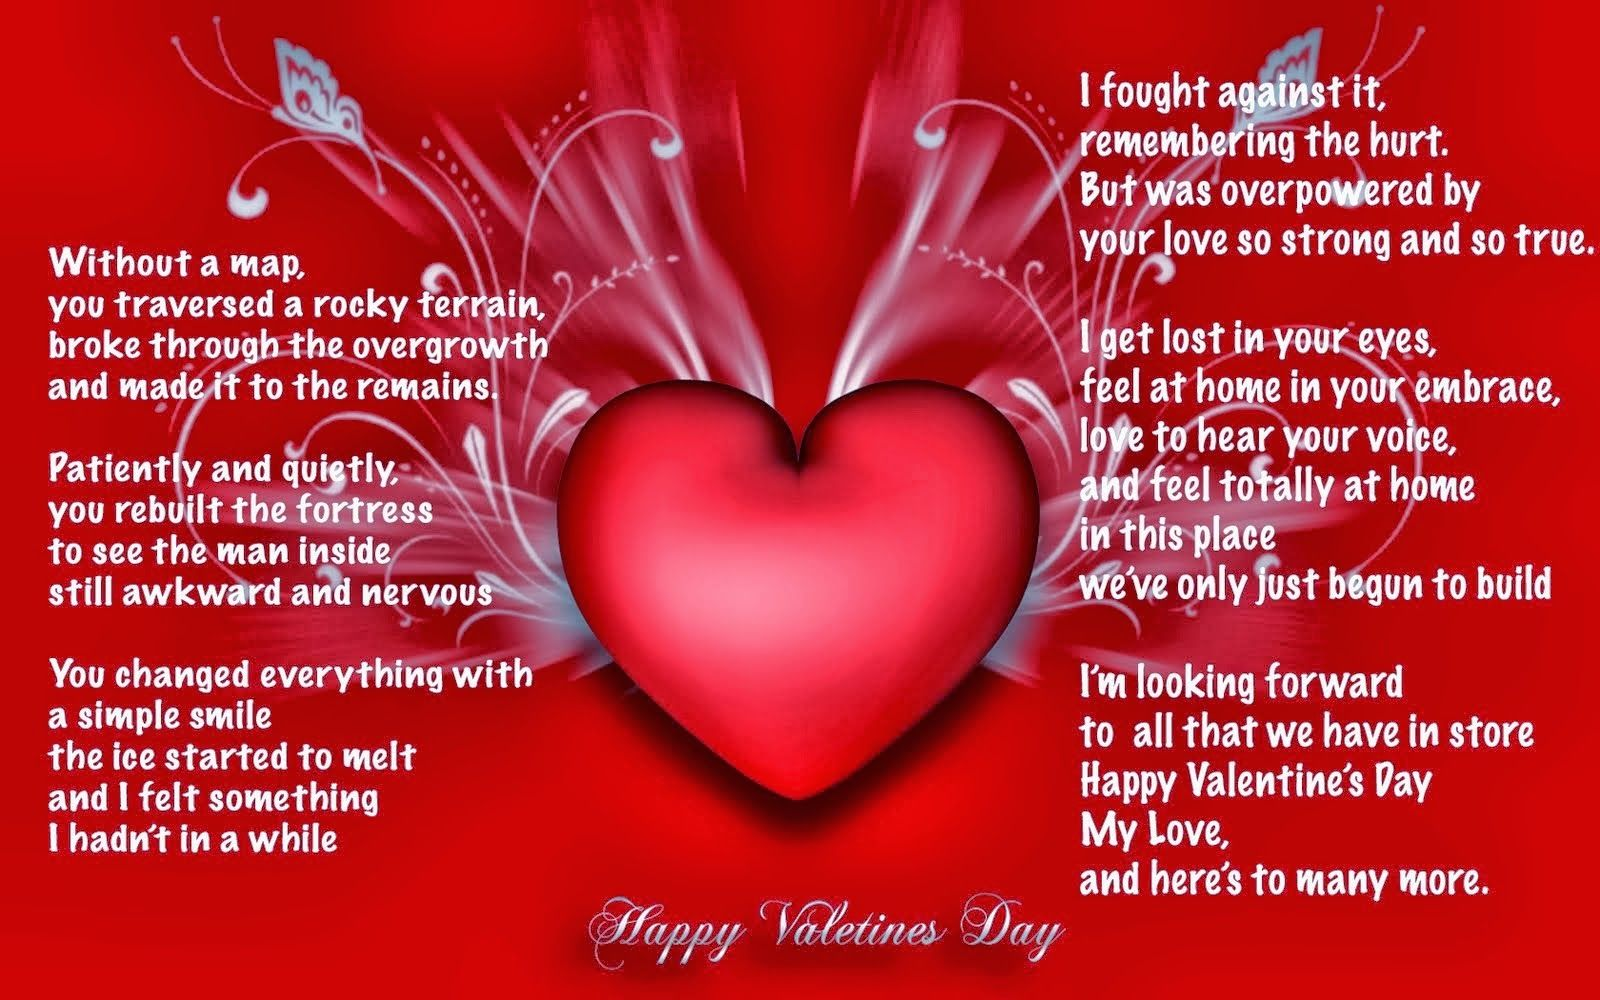 valentines day cards Google – Valentines Day Cards Greetings